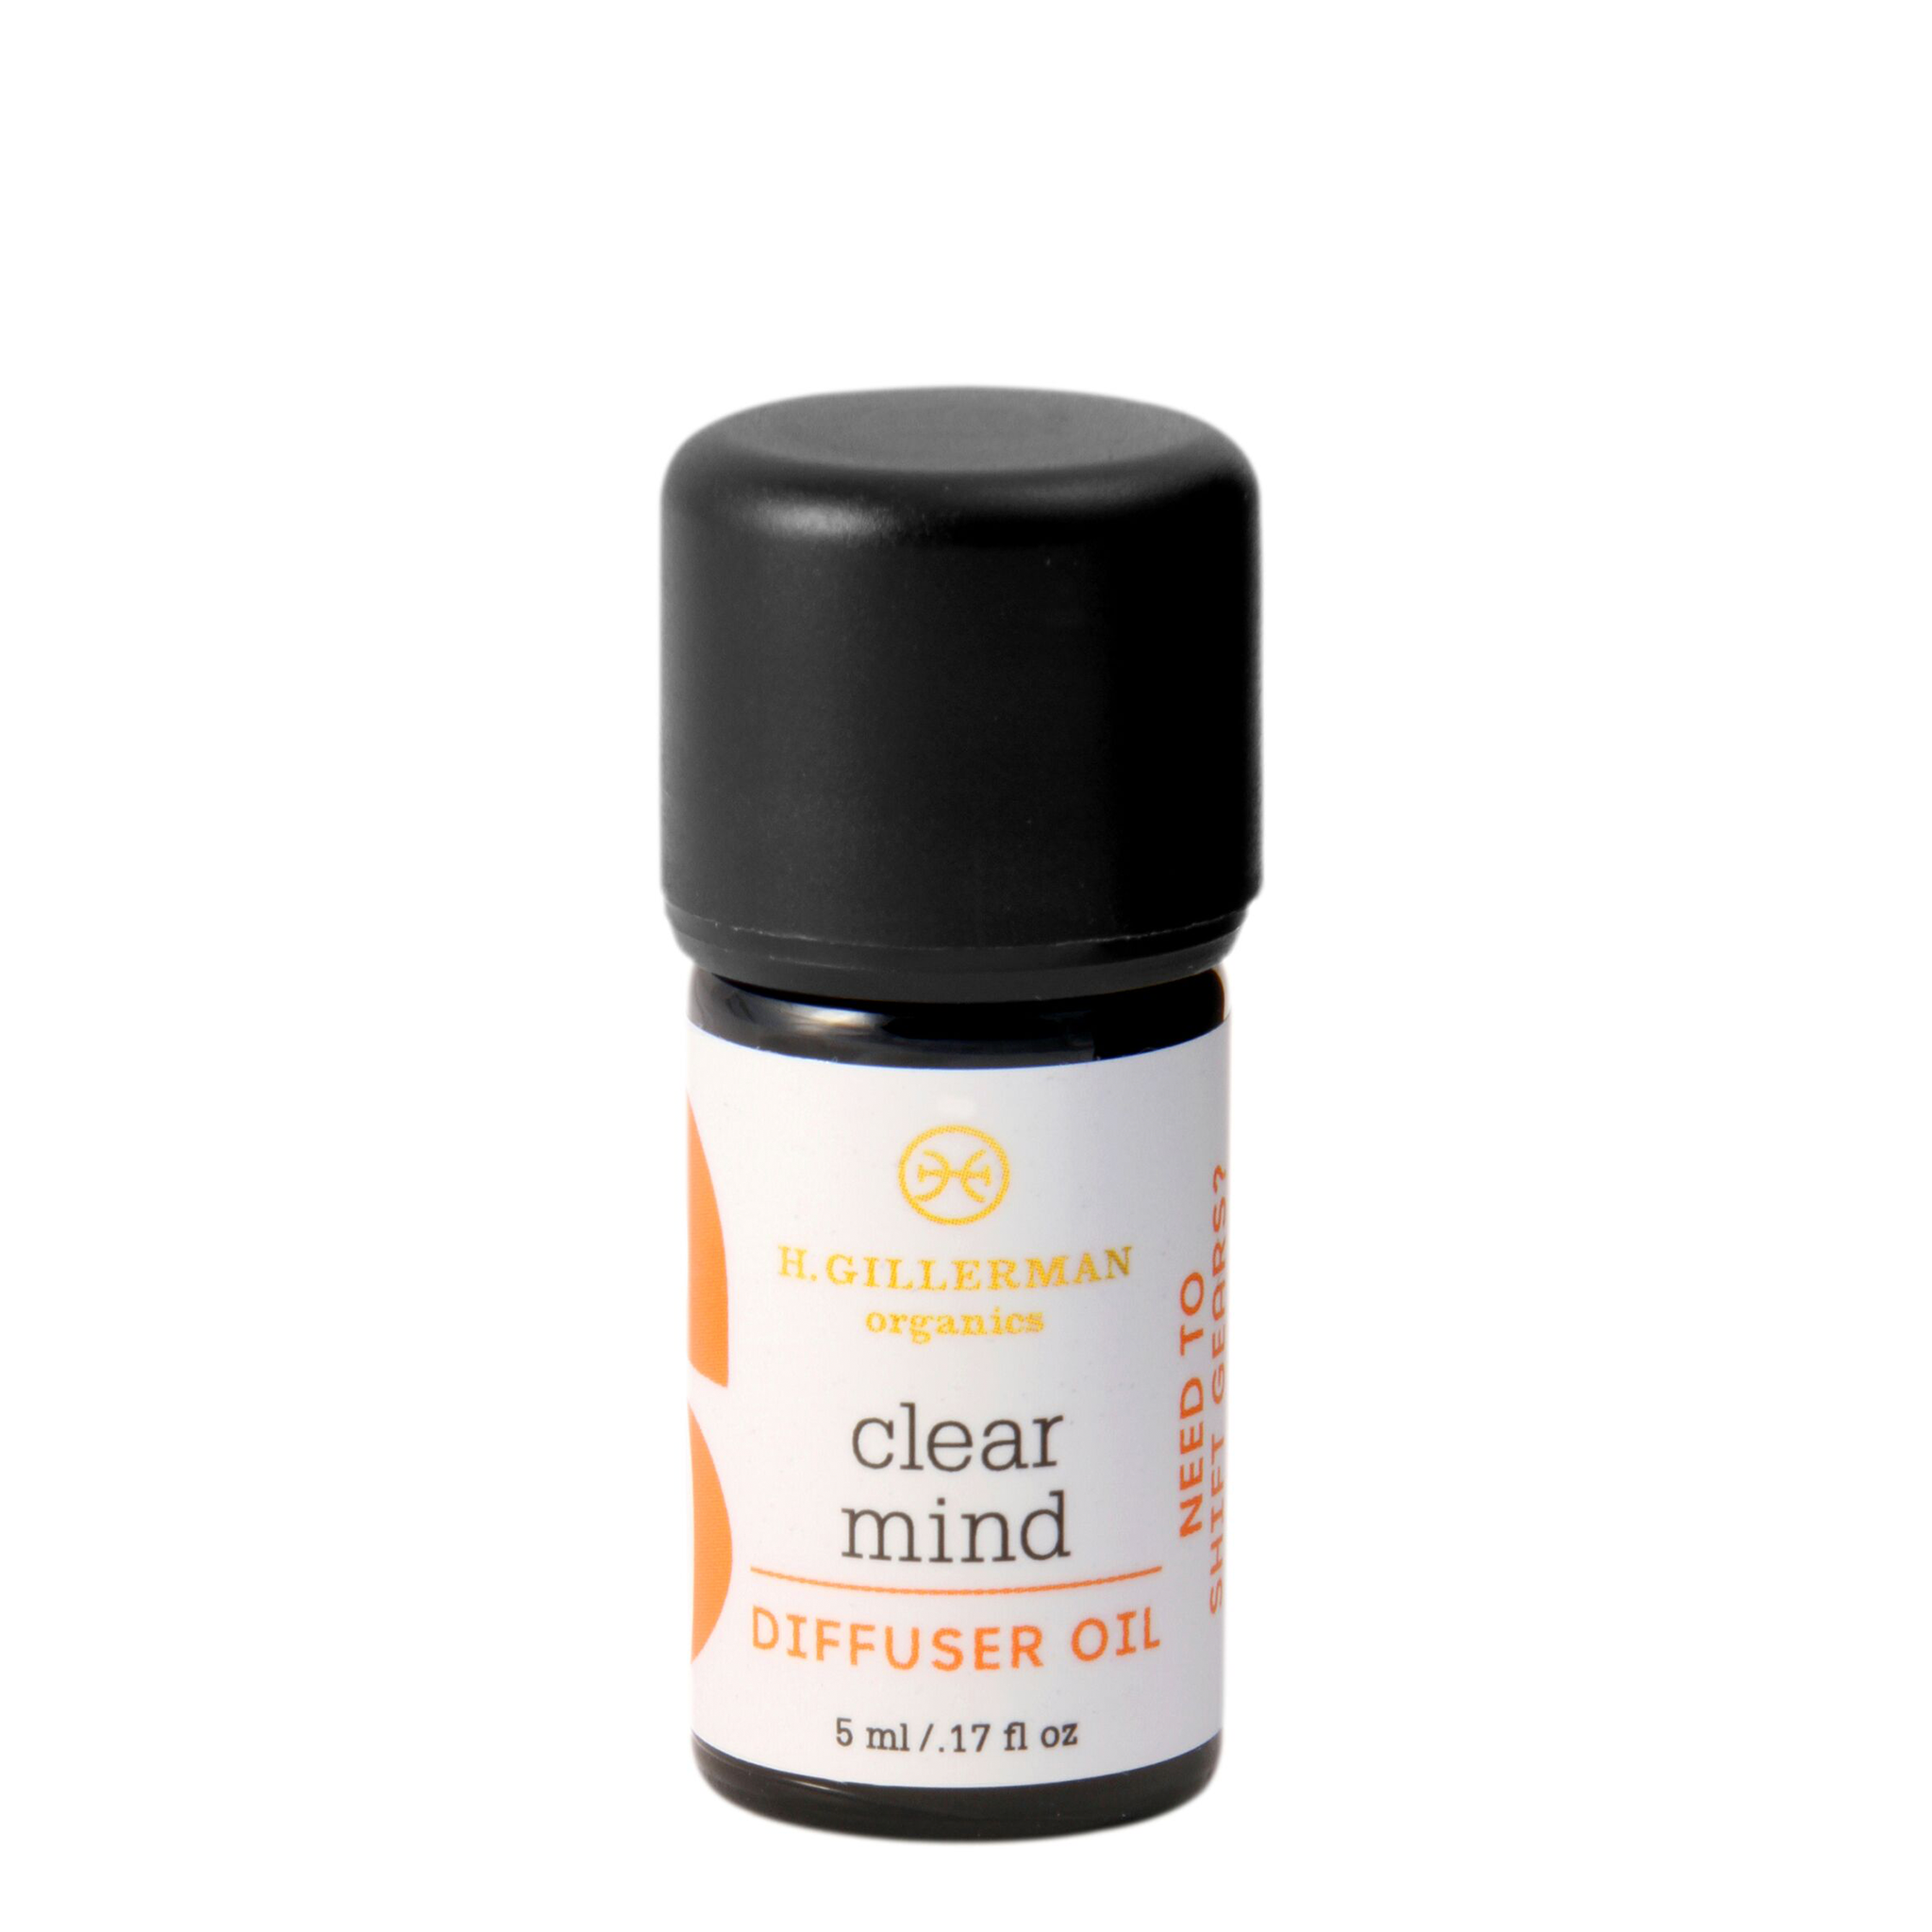 Hope Gillerman - Clear Mind Diffuser Oil